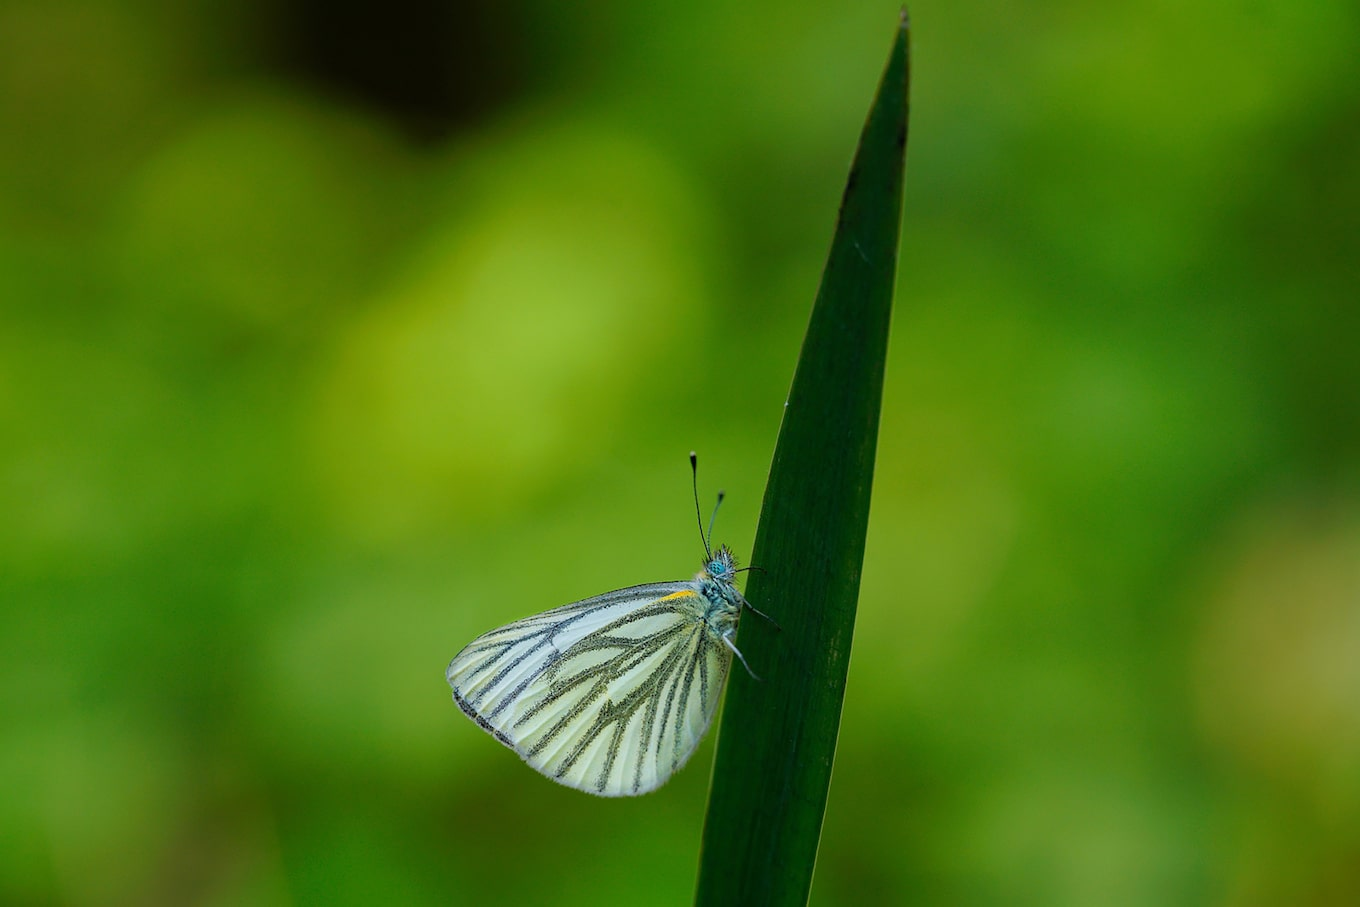 gustav-kiburg-sony-alpha-7RII-butterfly-clings-to-leaf-stem